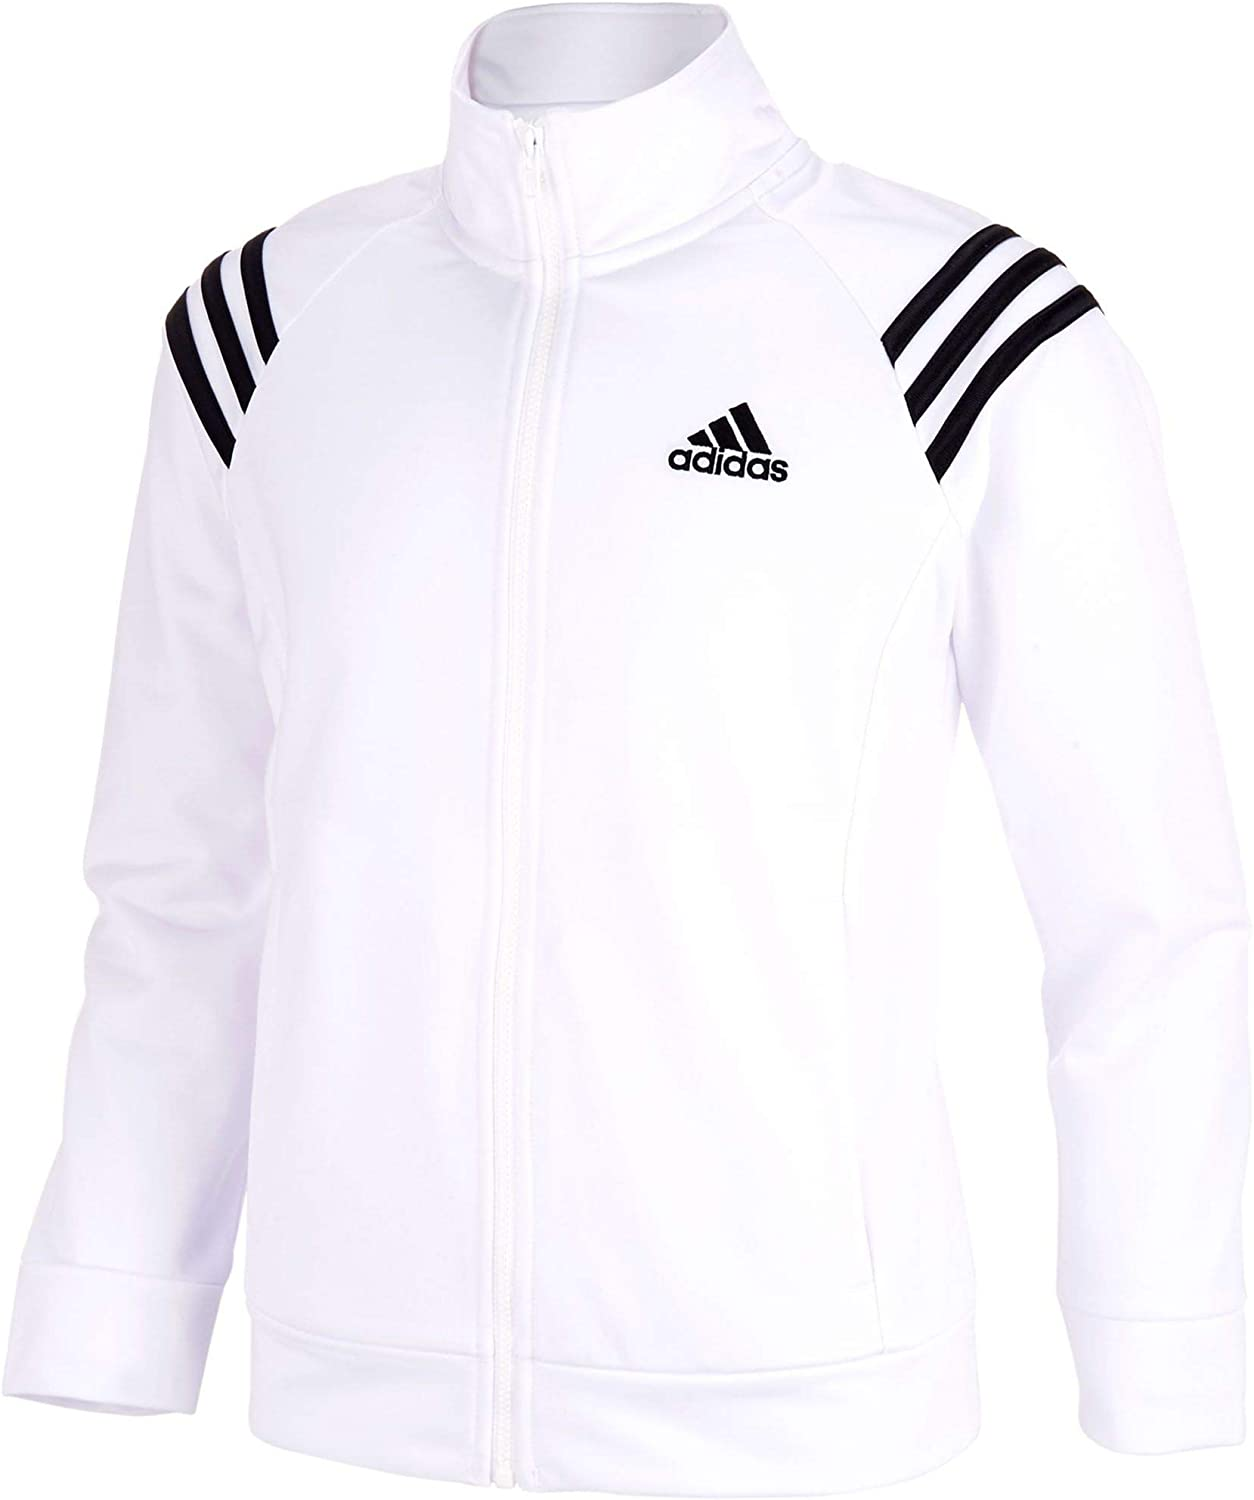 adidas Girls Event Full Zip Tricot Sports Jackets with Side Pockets